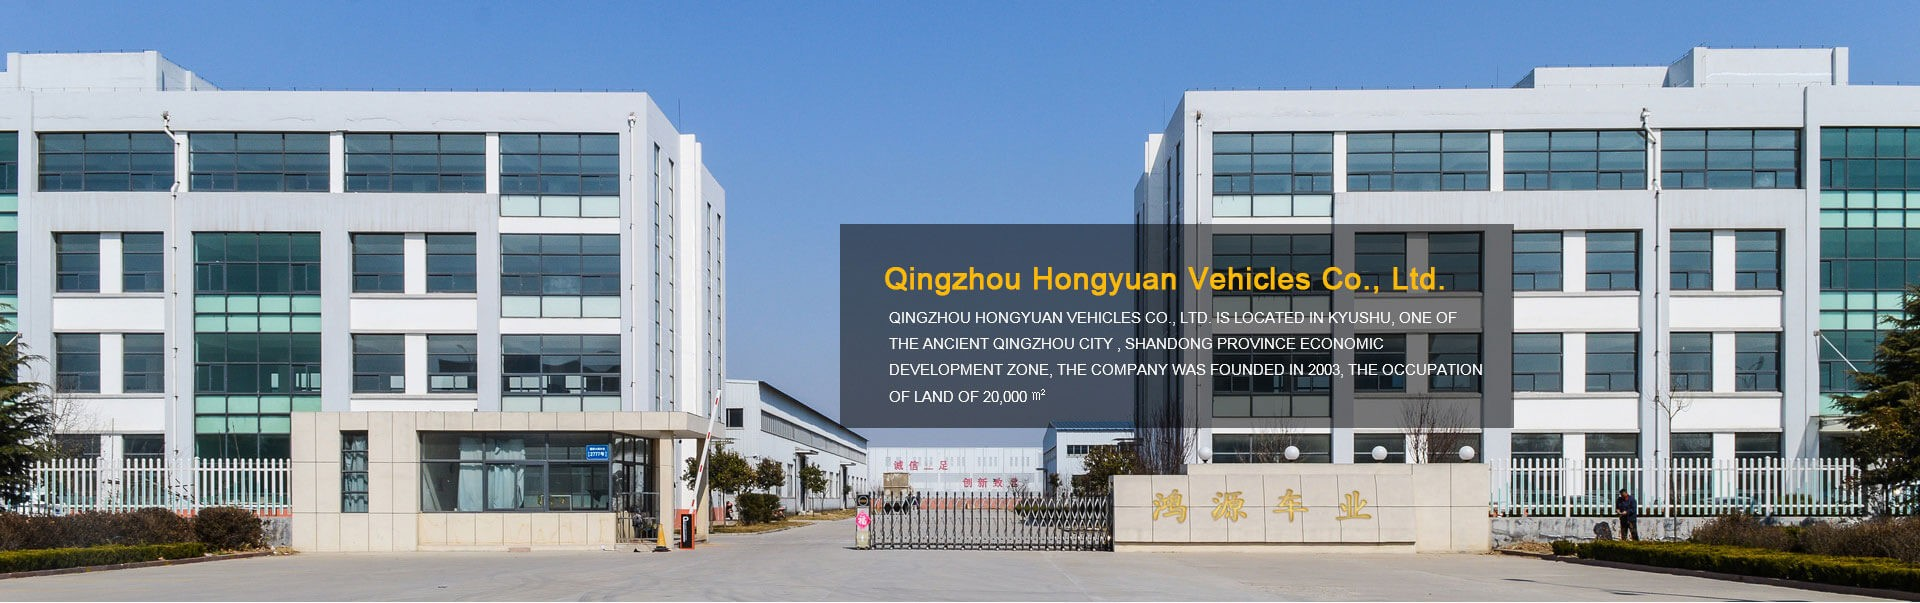 Qingzhou Hongyuan Vehicles Co., Ltd